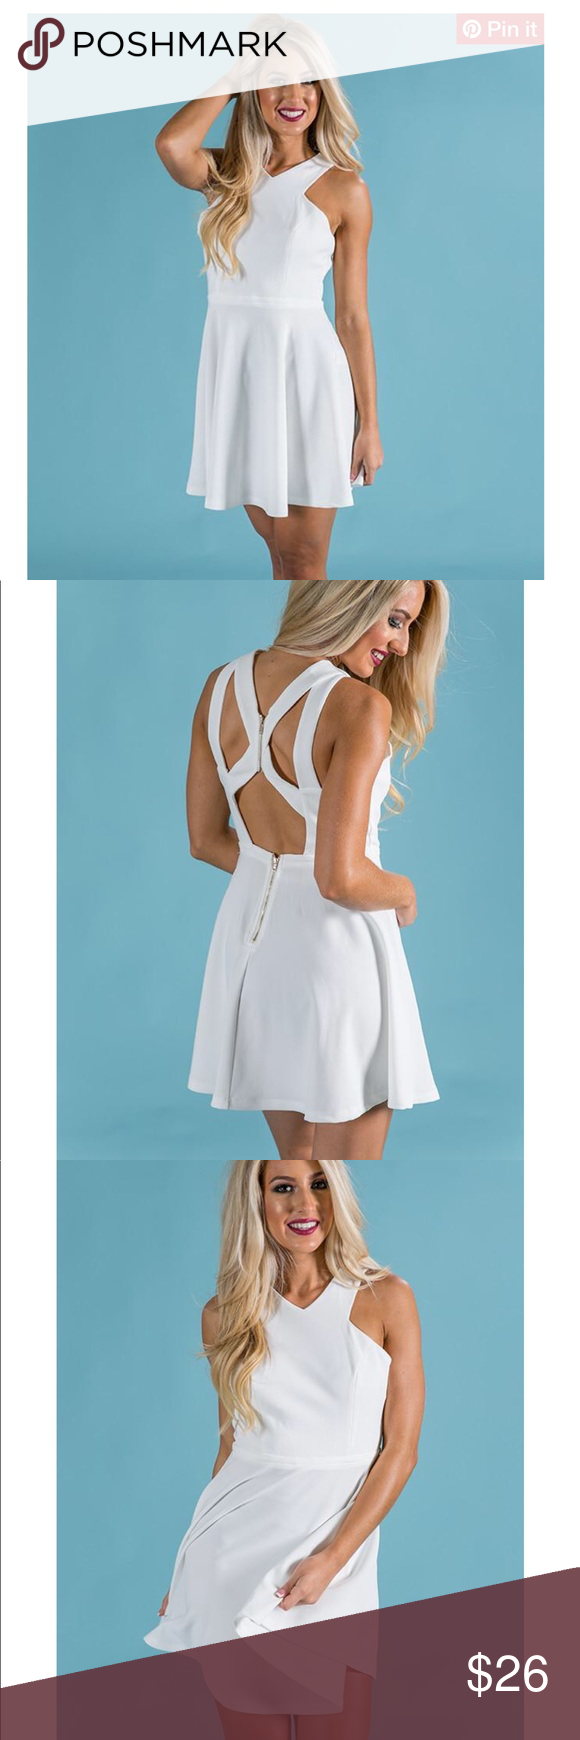 White Cut Out Dress NWT Brand New, Bought to wear for Bachelorette ...